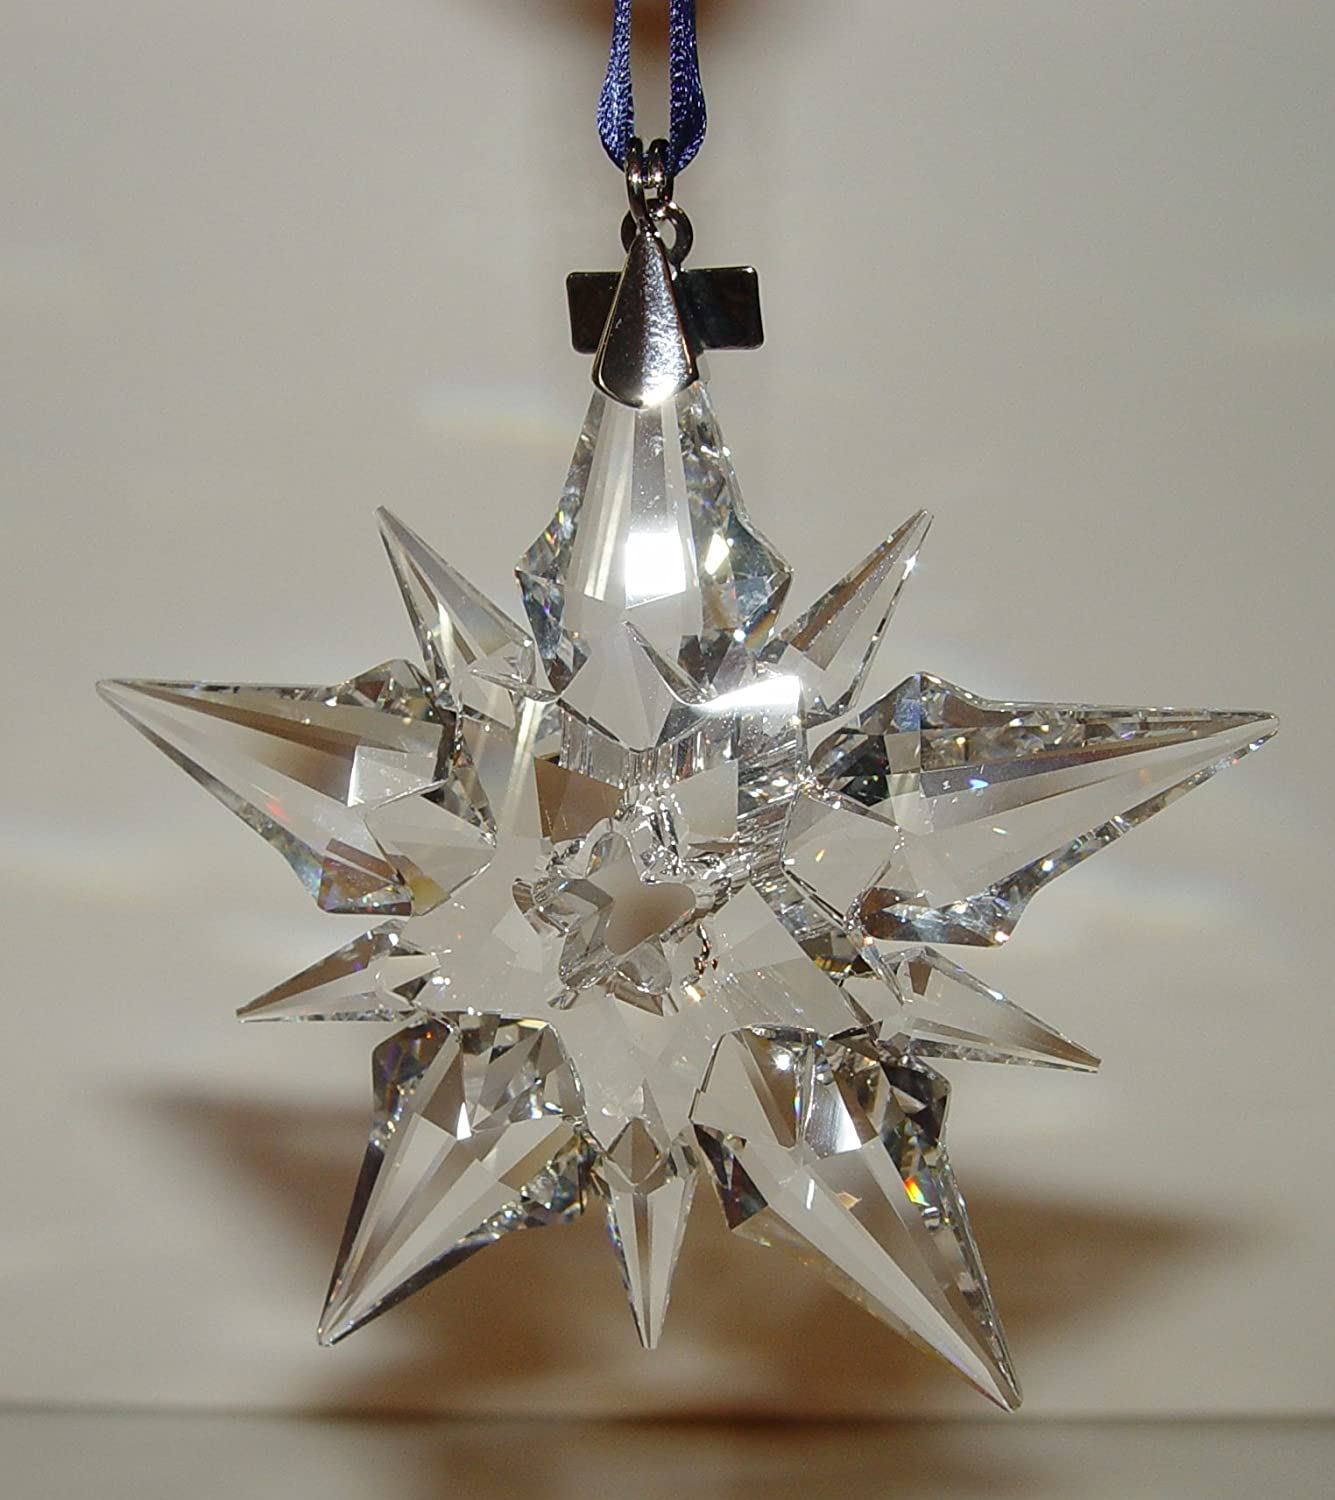 Swarovski christmas ornament 2004 - Swarovski Christmas Ornament 2004 25